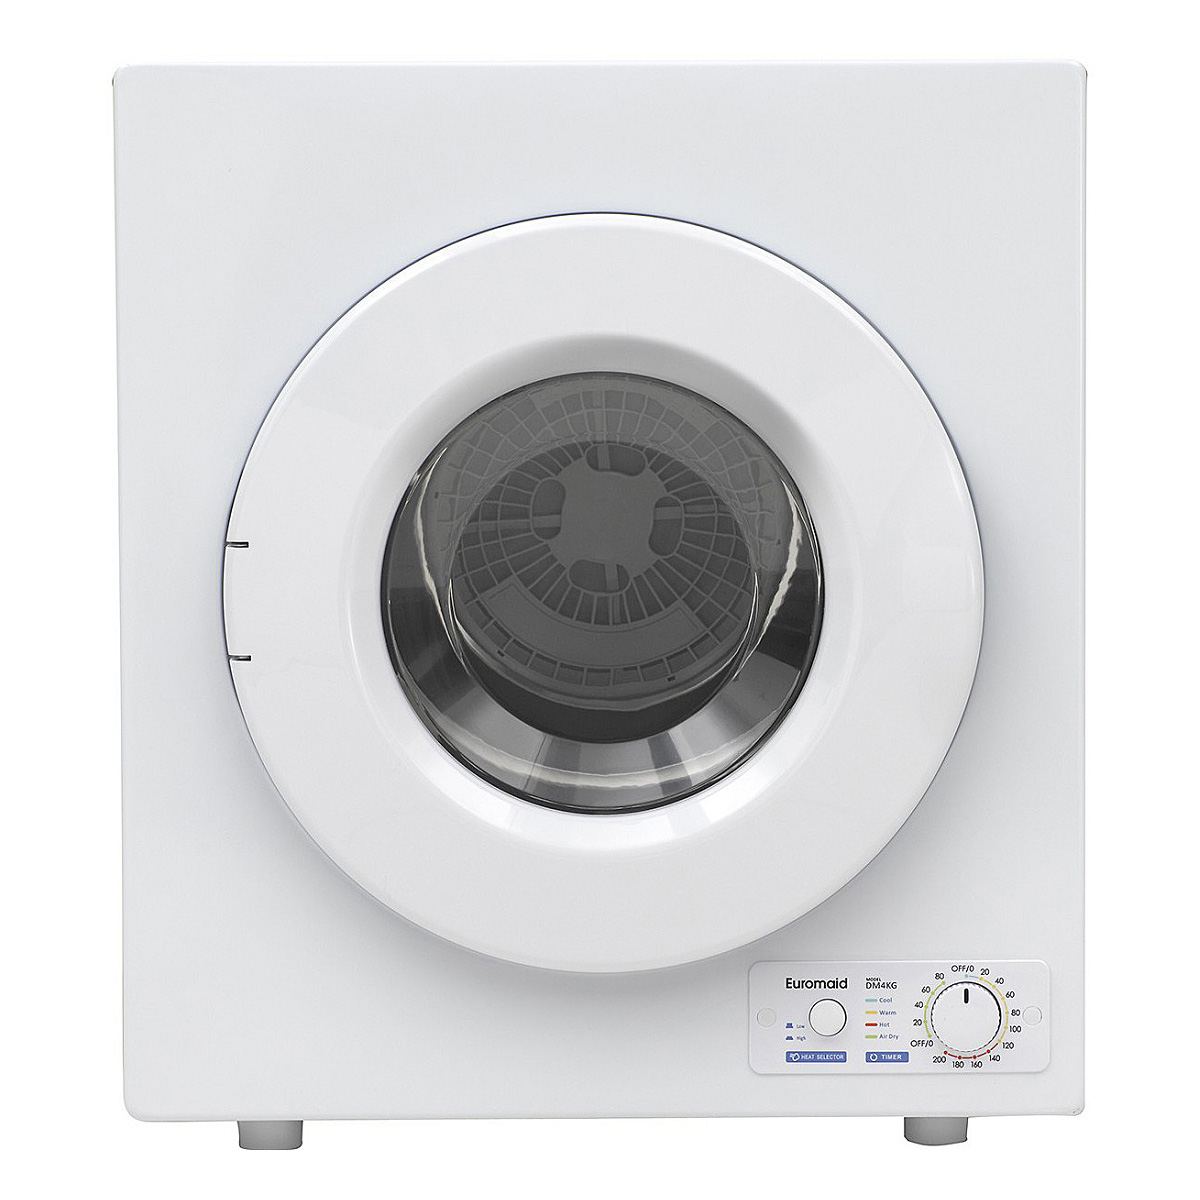 Euromaid Tumble Dryer DM4KG